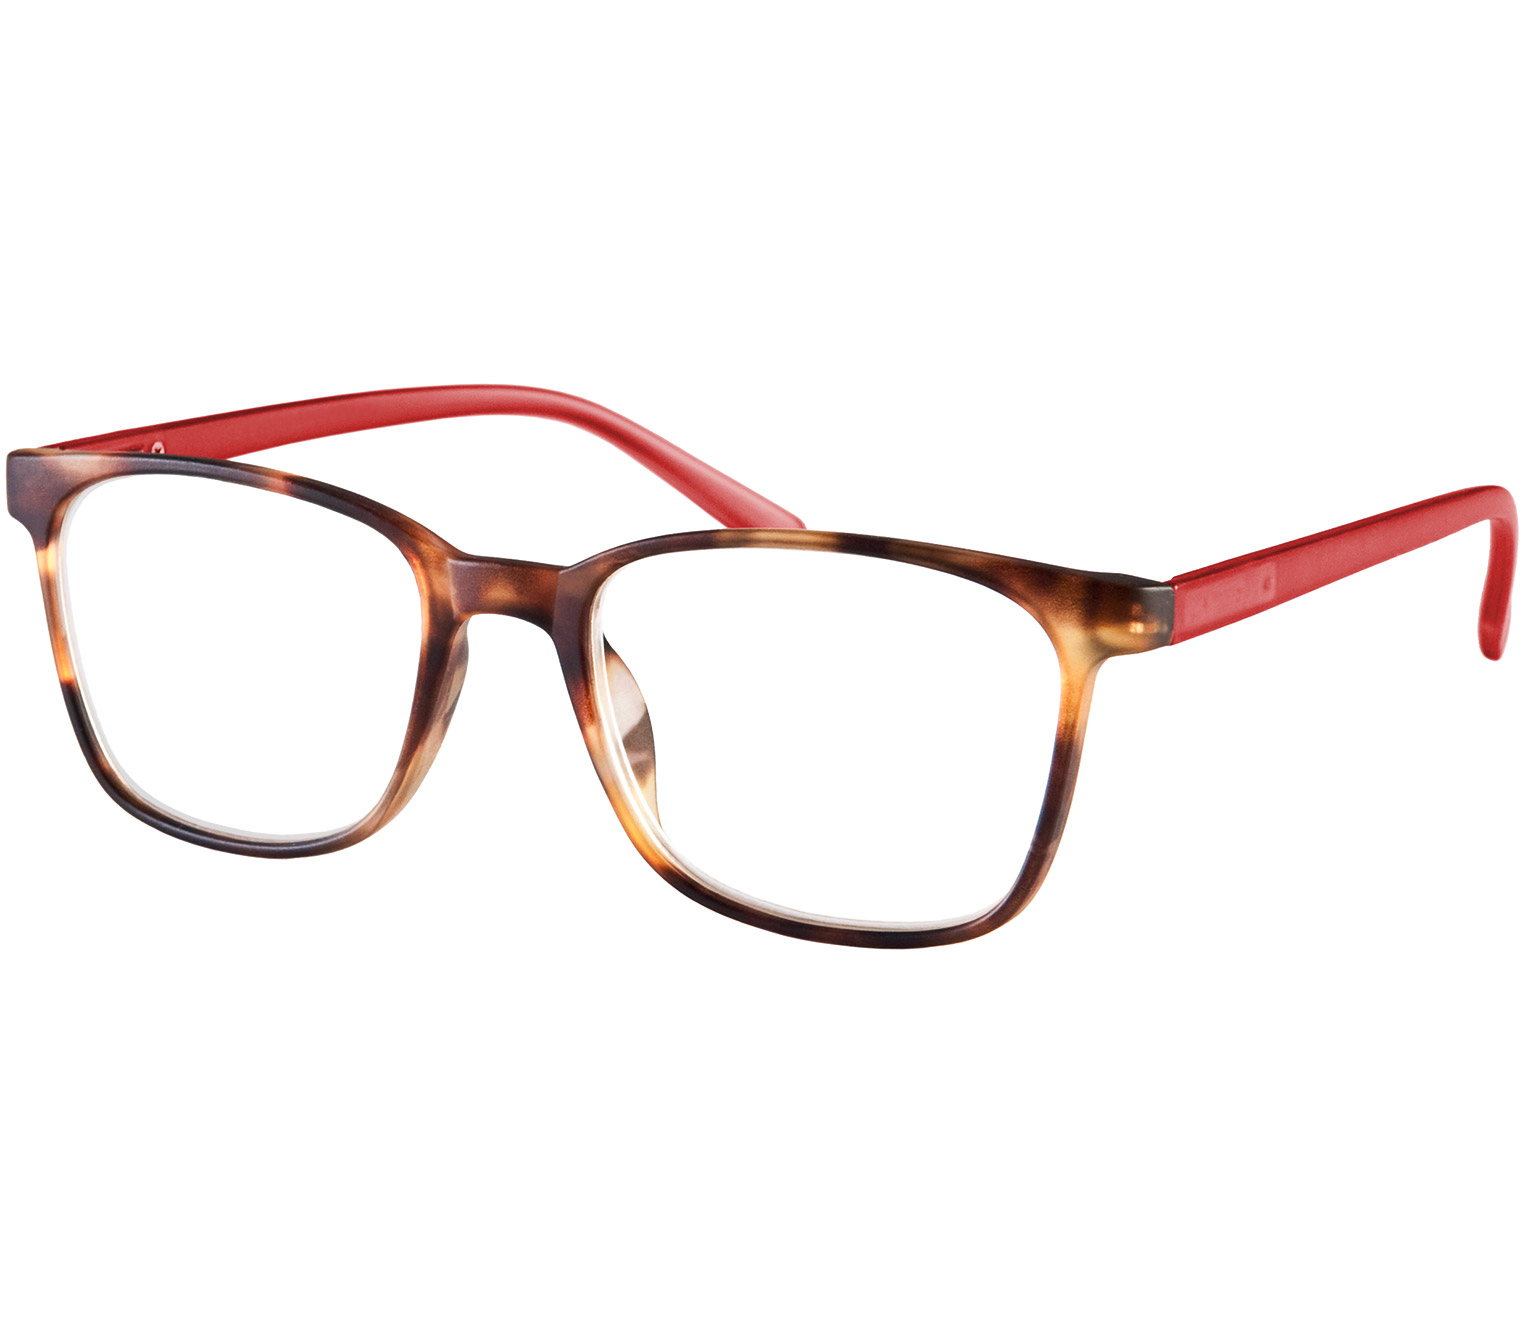 Main Image (Angle) - Artist (Tortoiseshell) Retro Reading Glasses